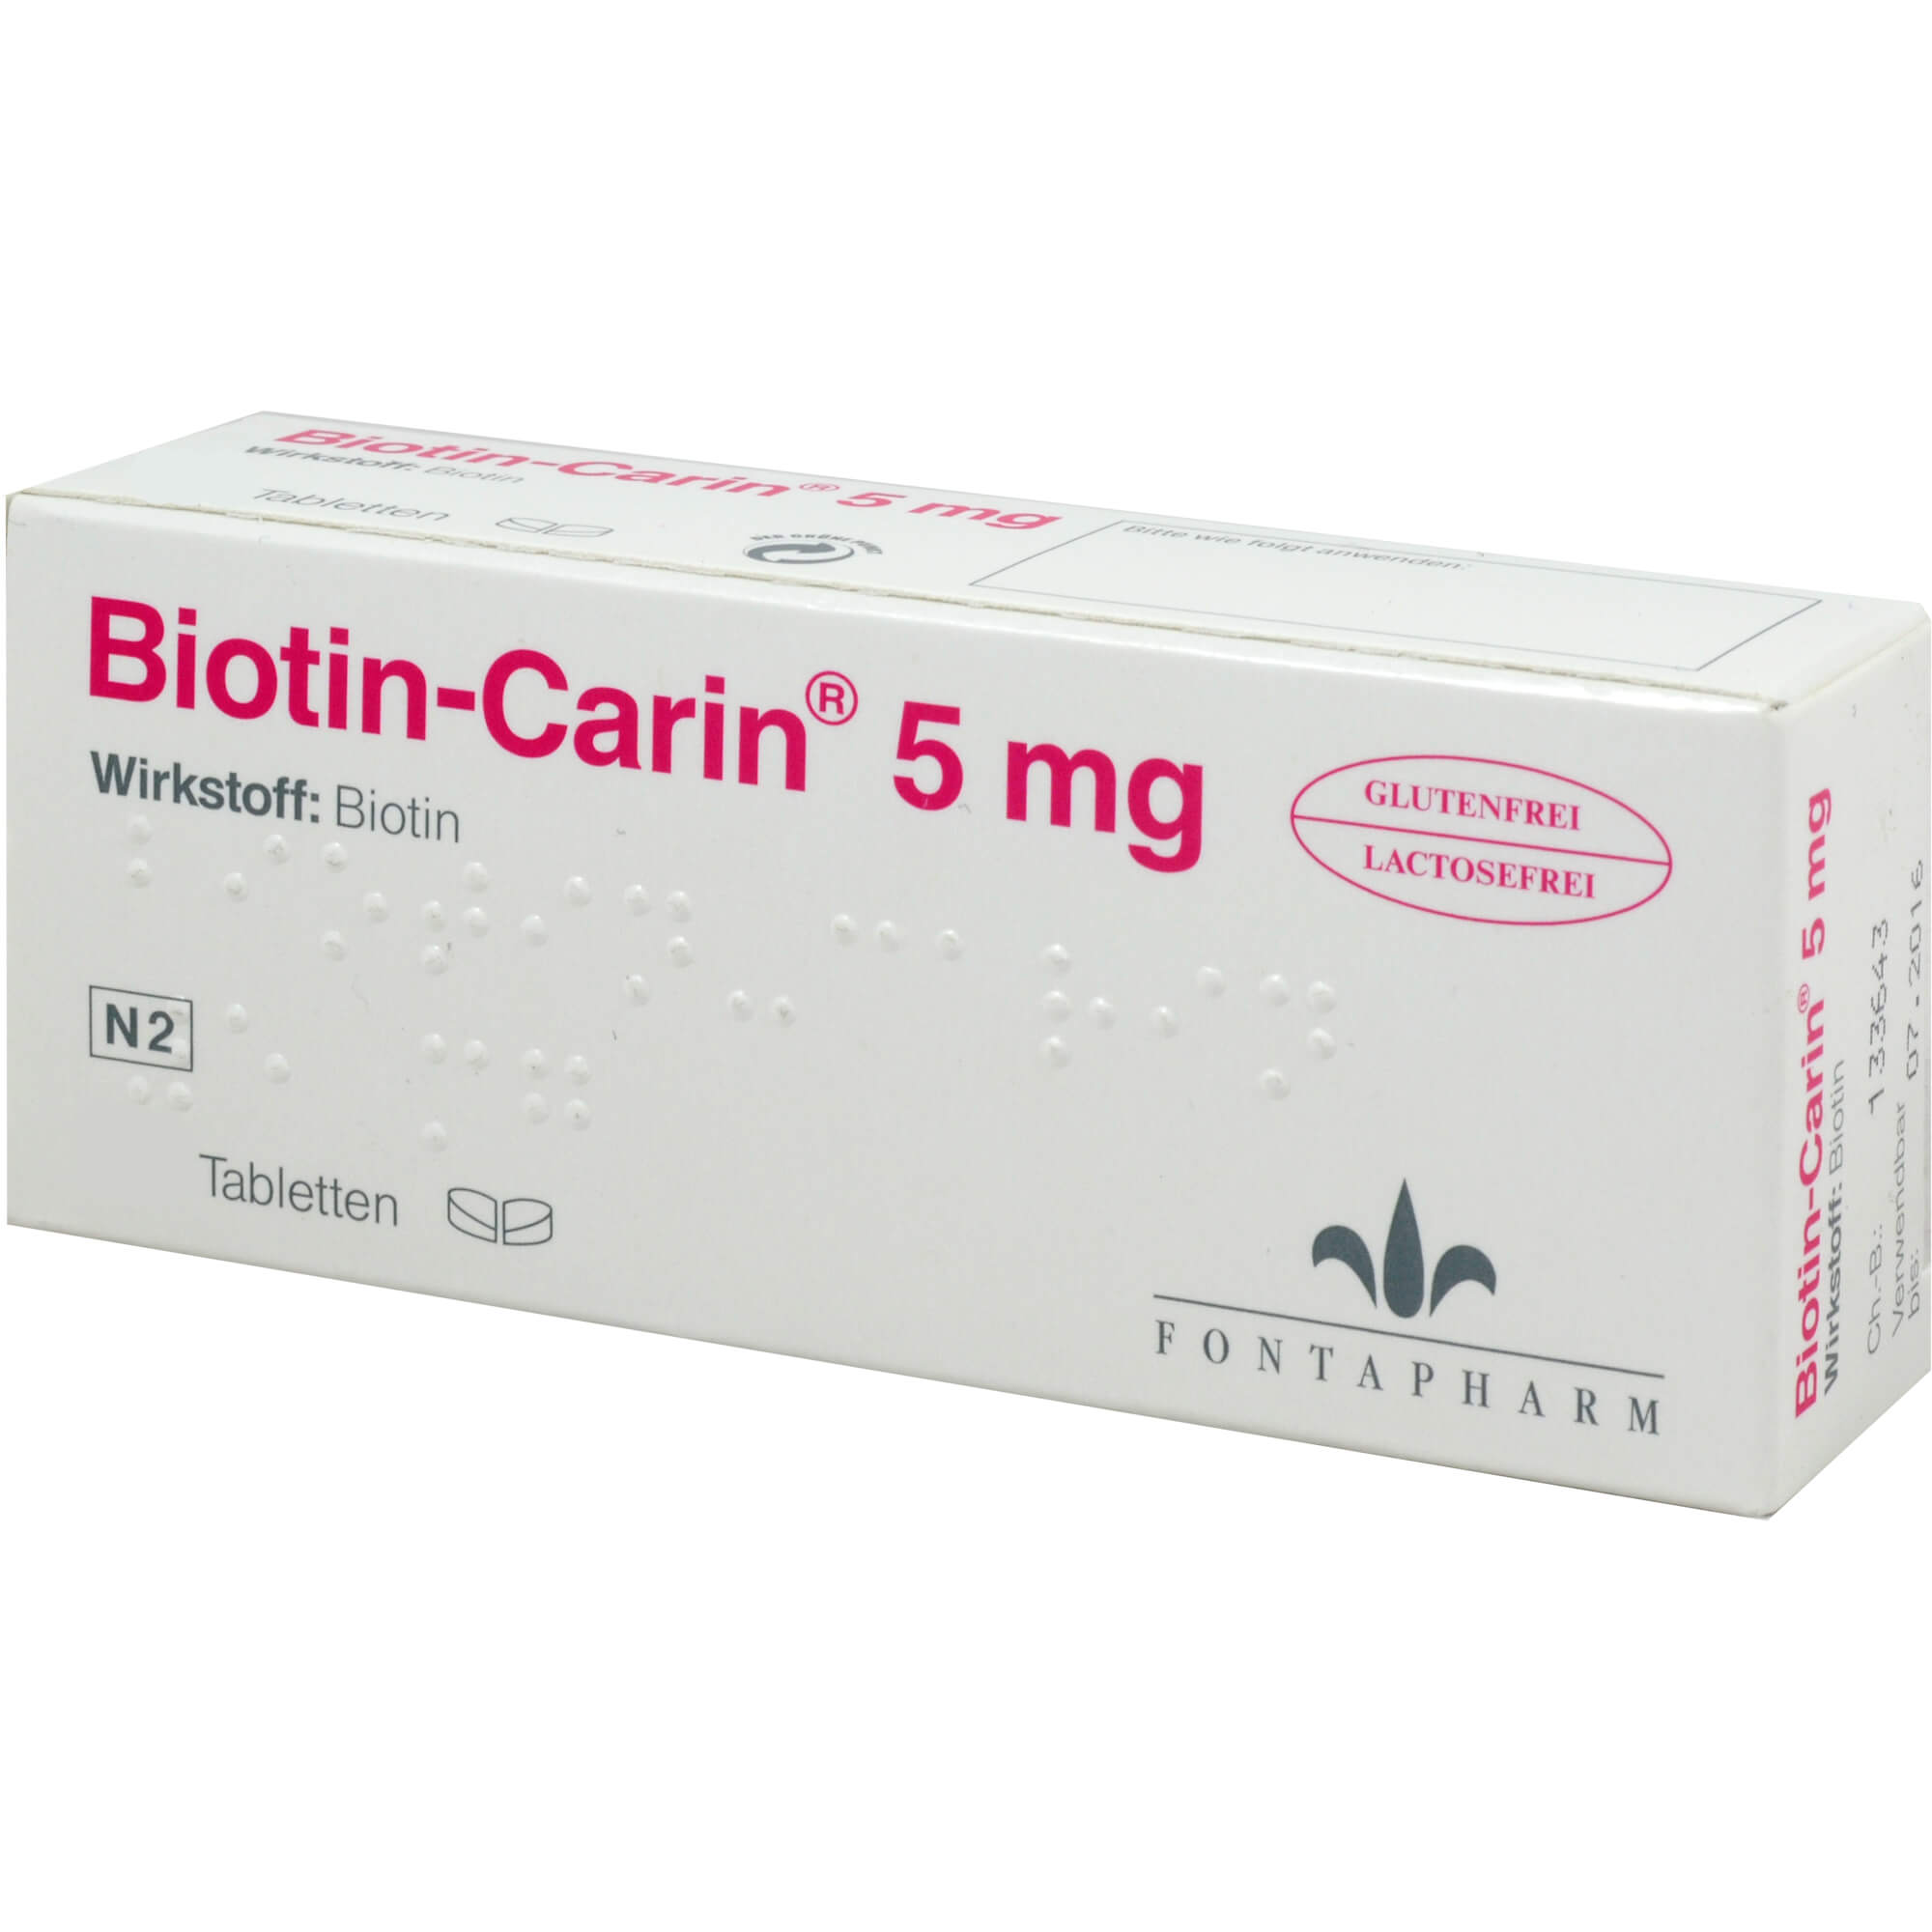 BIOTIN-CARIN 5 mg Tabletten